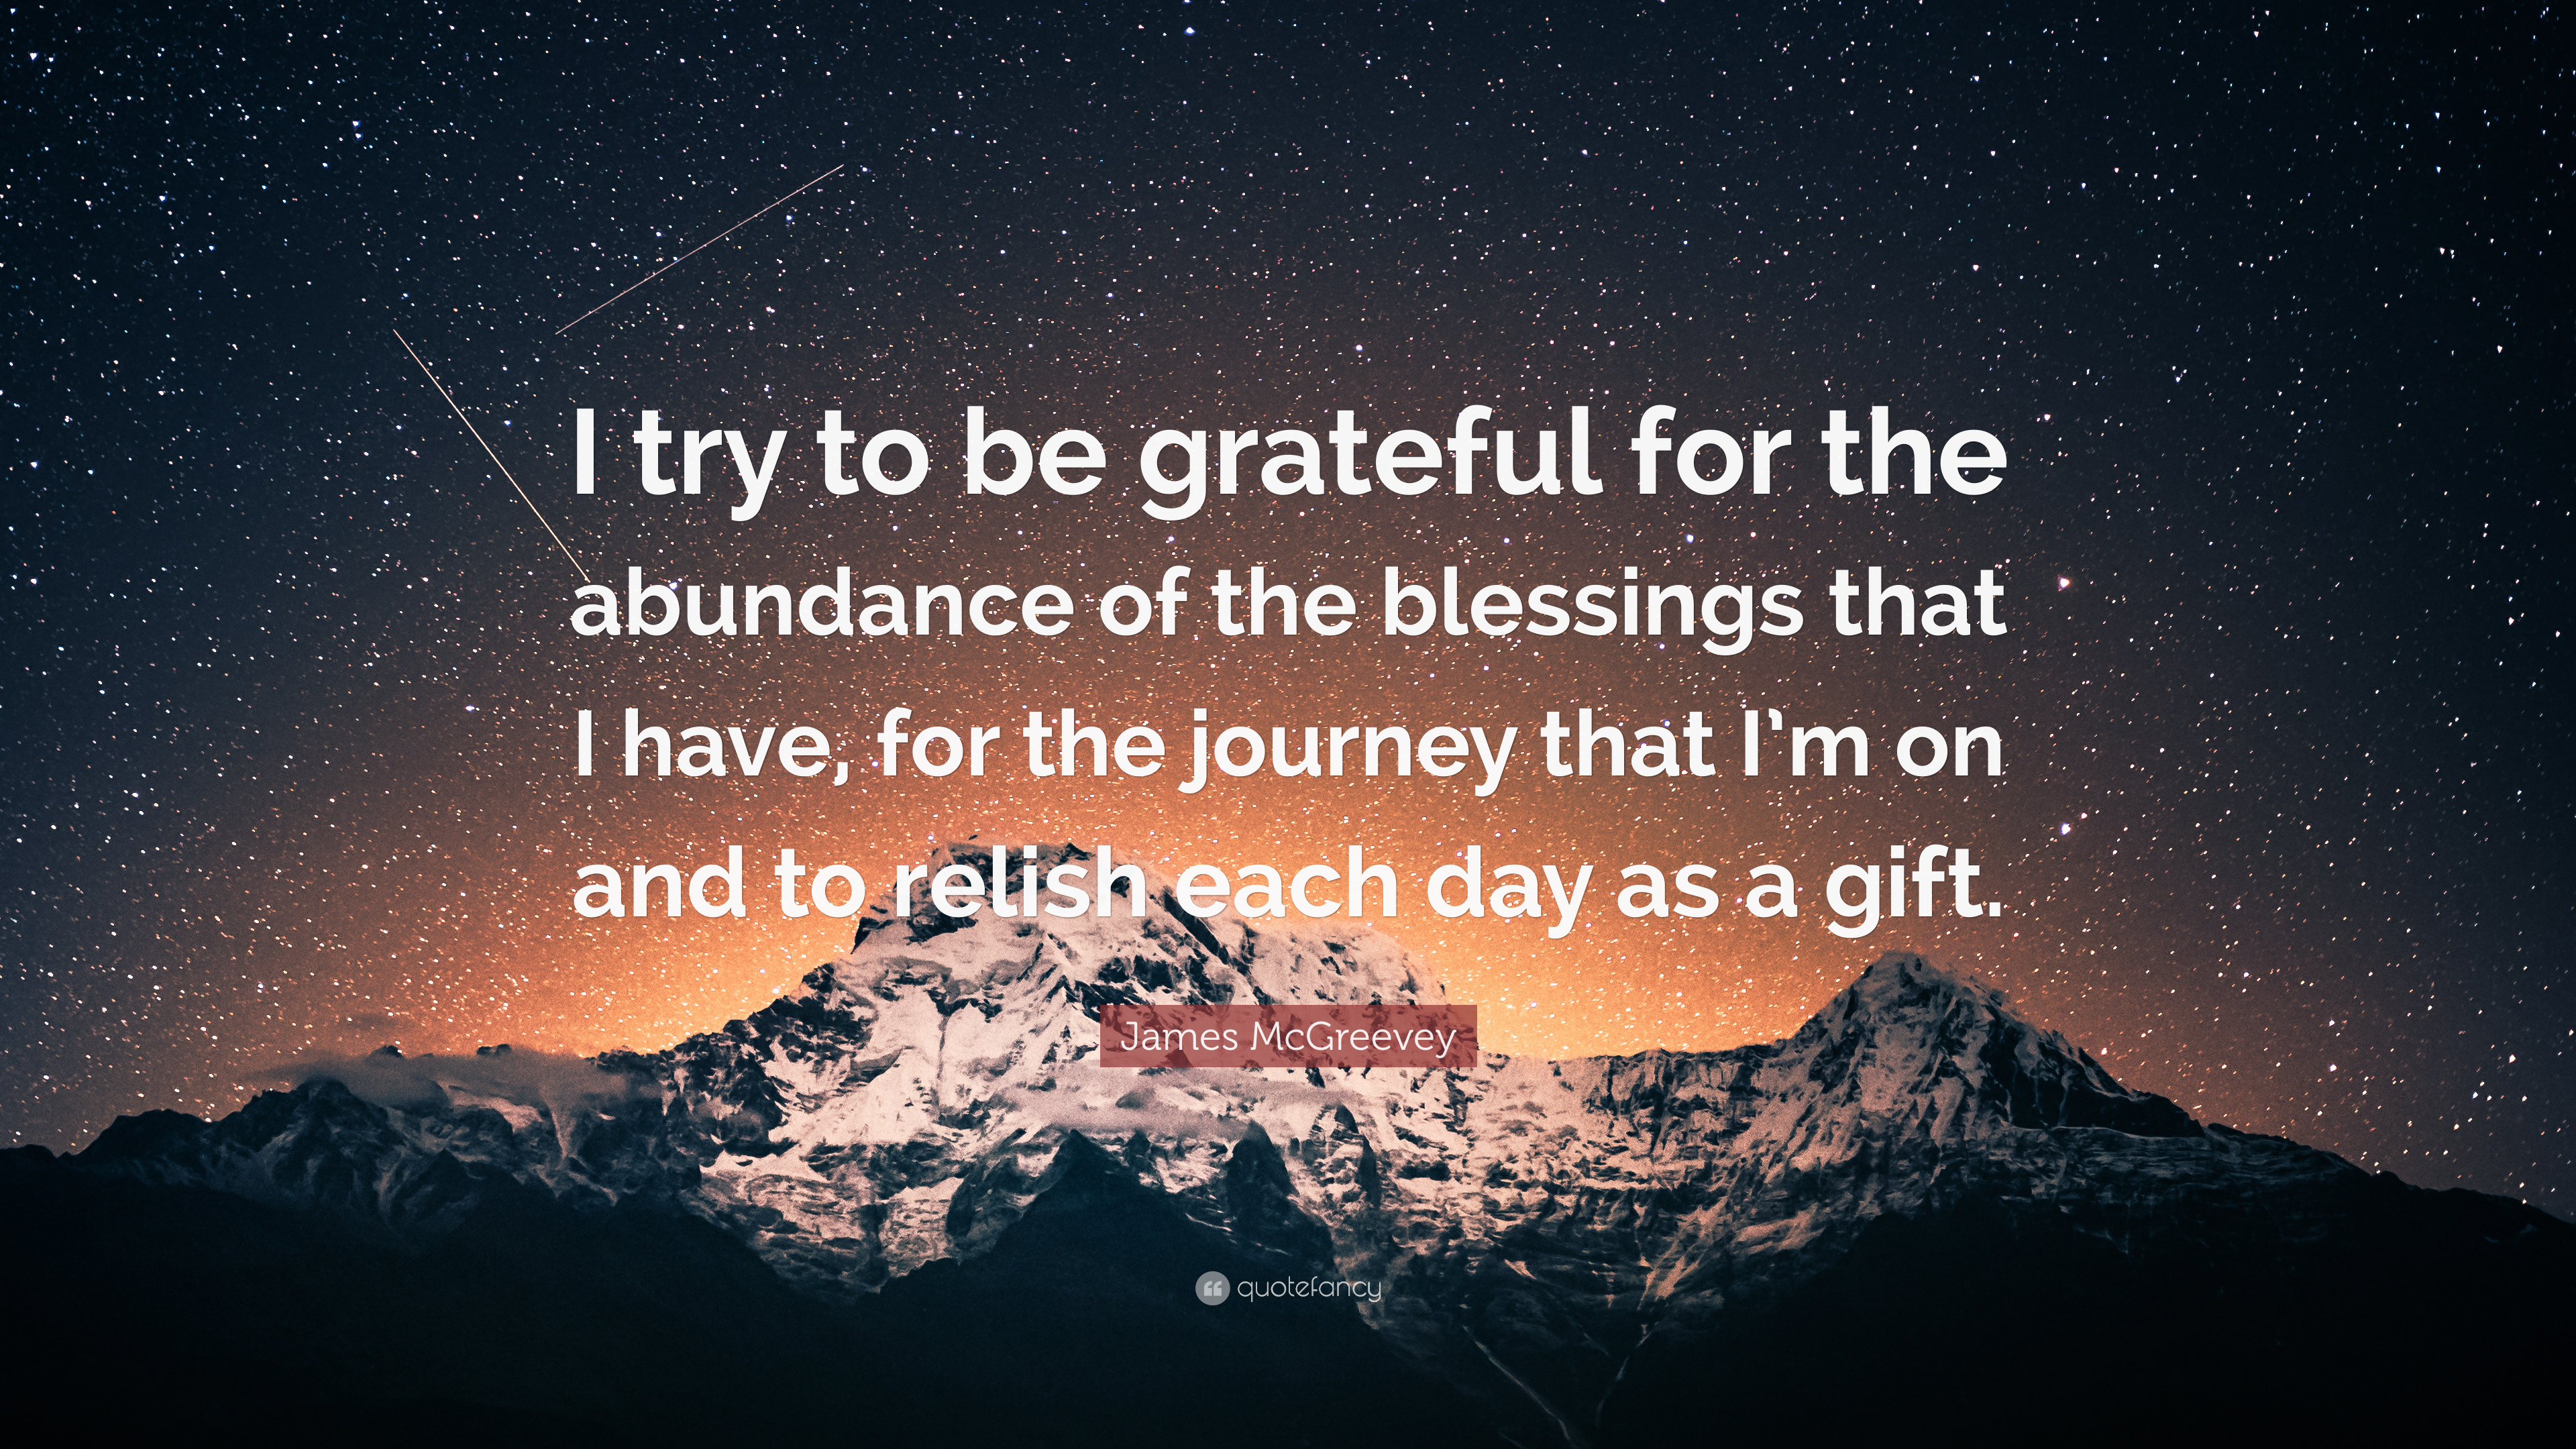 """James McGreevey Quote: """"I try to be grateful for the abundance of the  blessings that I have, for the journey that I'm on and to relish each day  ..."""" (7 wallpapers) - Quotefancy"""